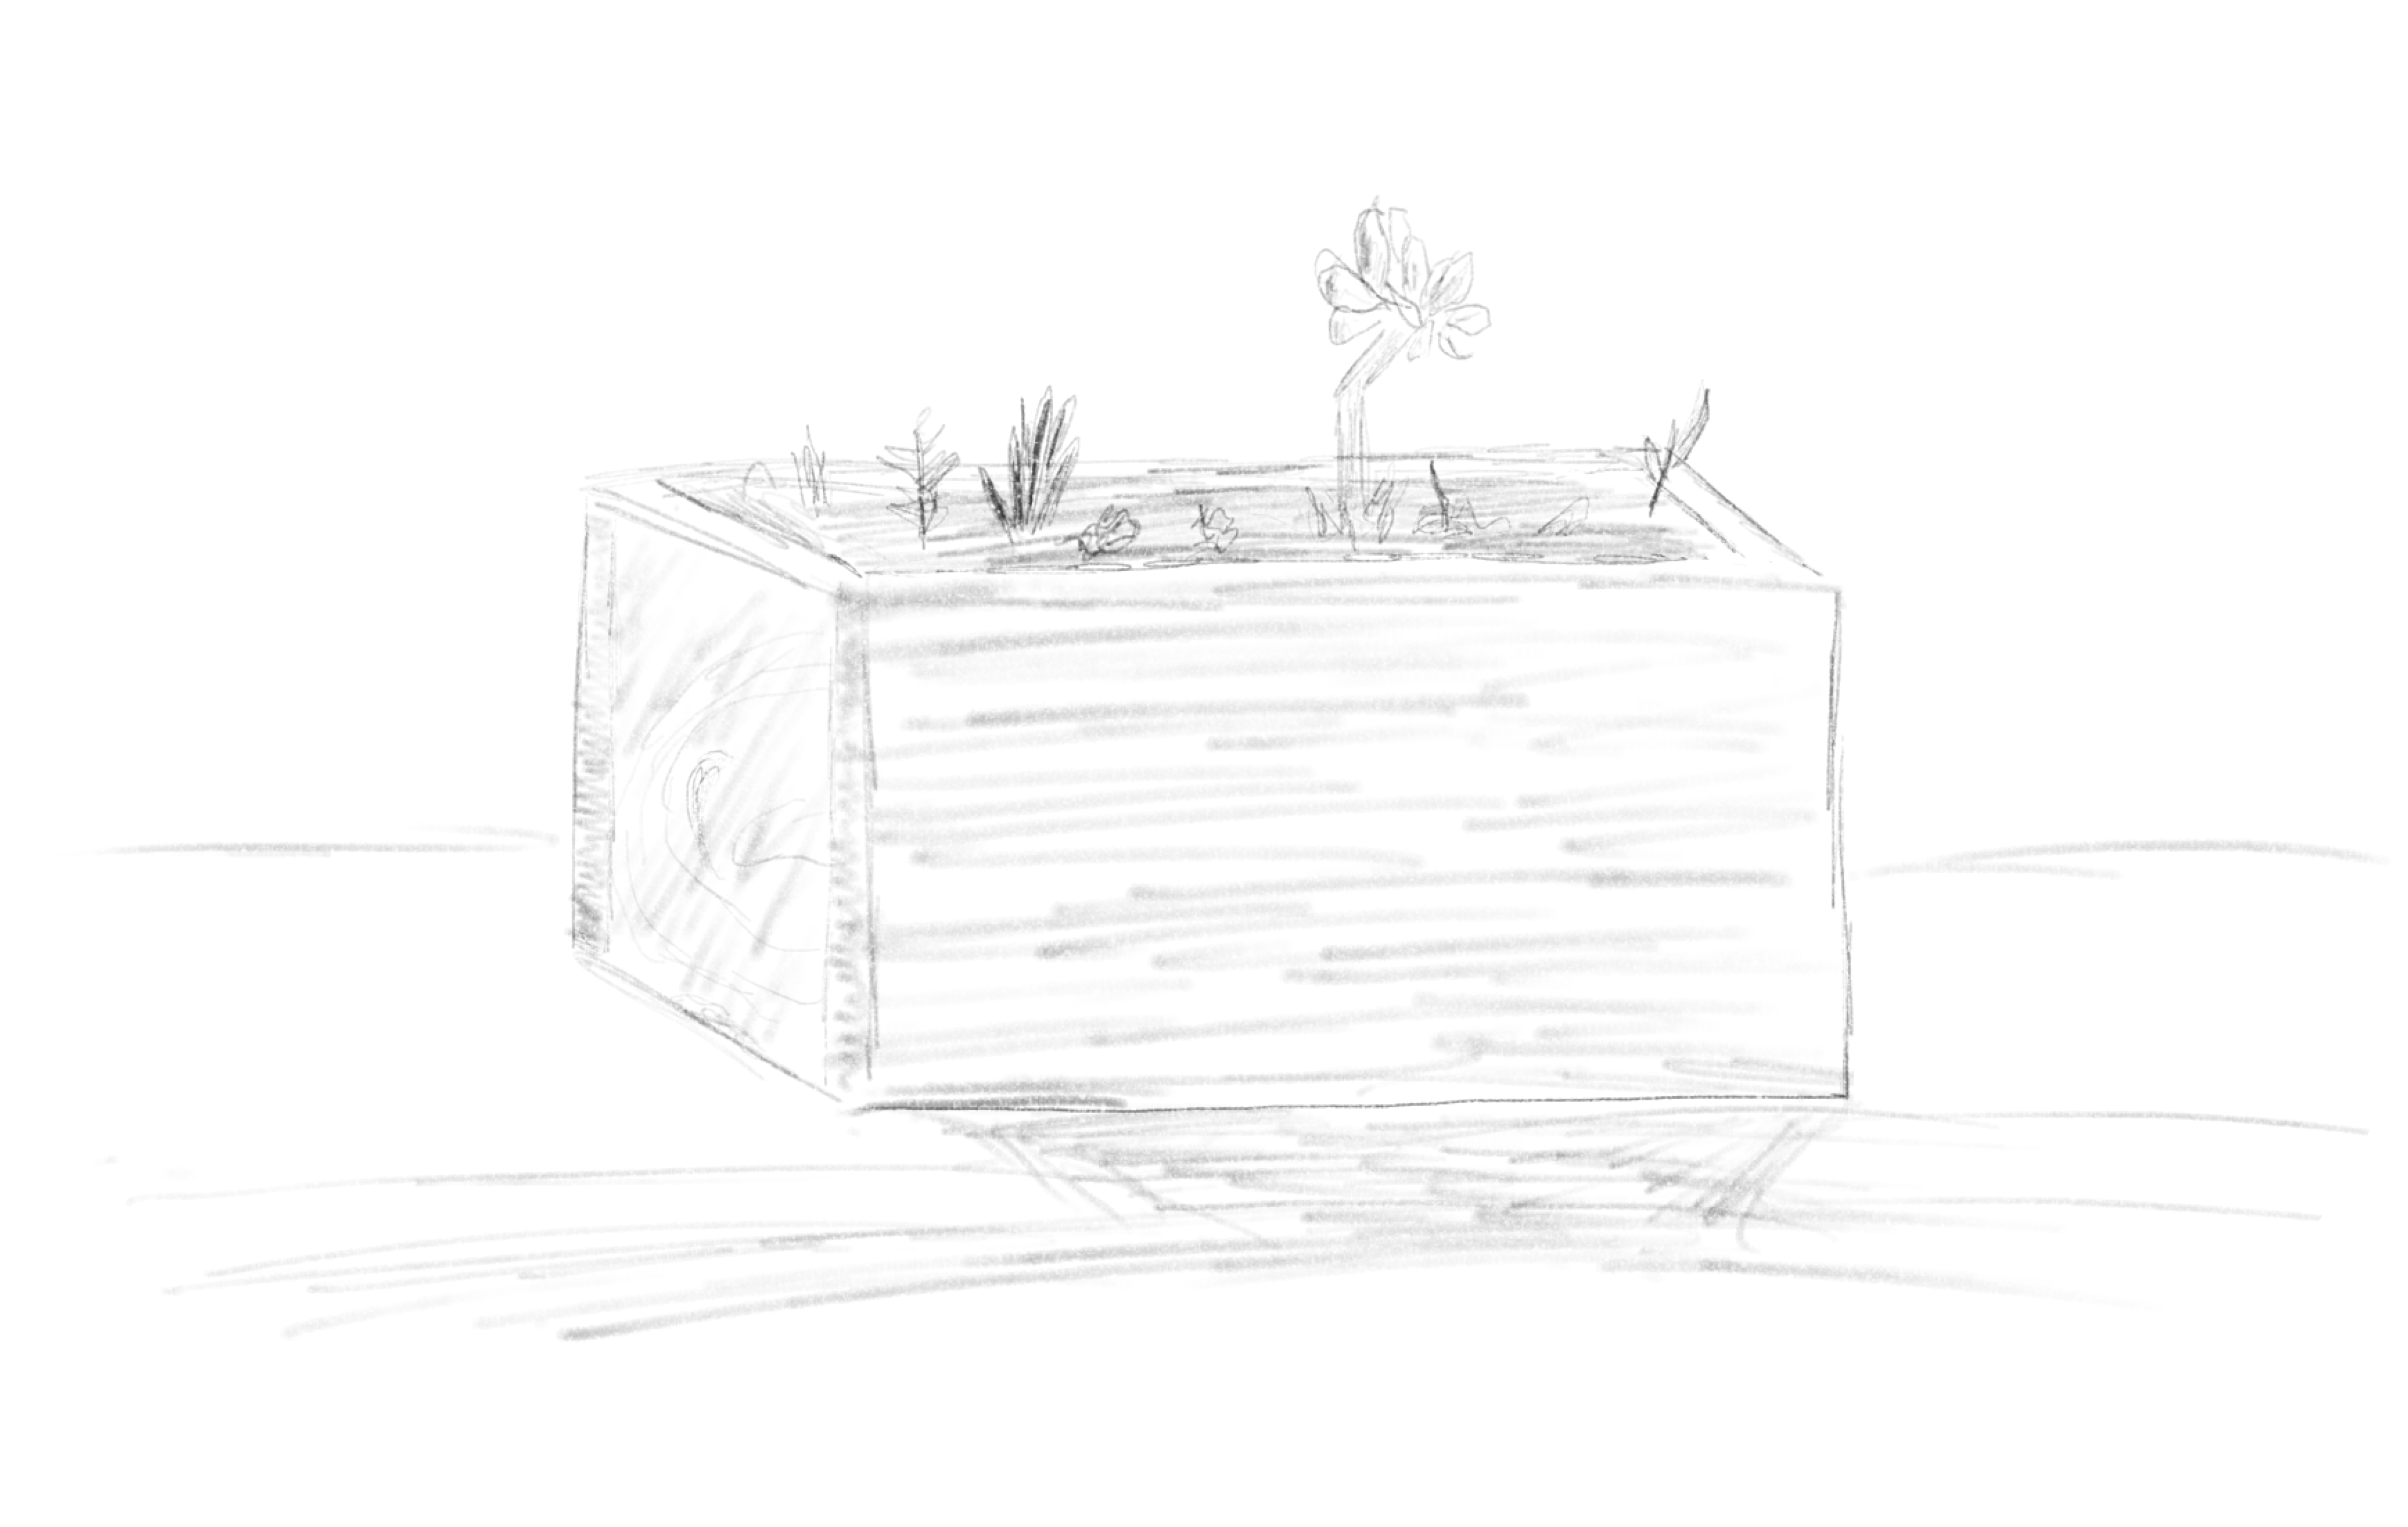 Sketch of a rectangular wooden planter. A few succulents are growing in the planter.